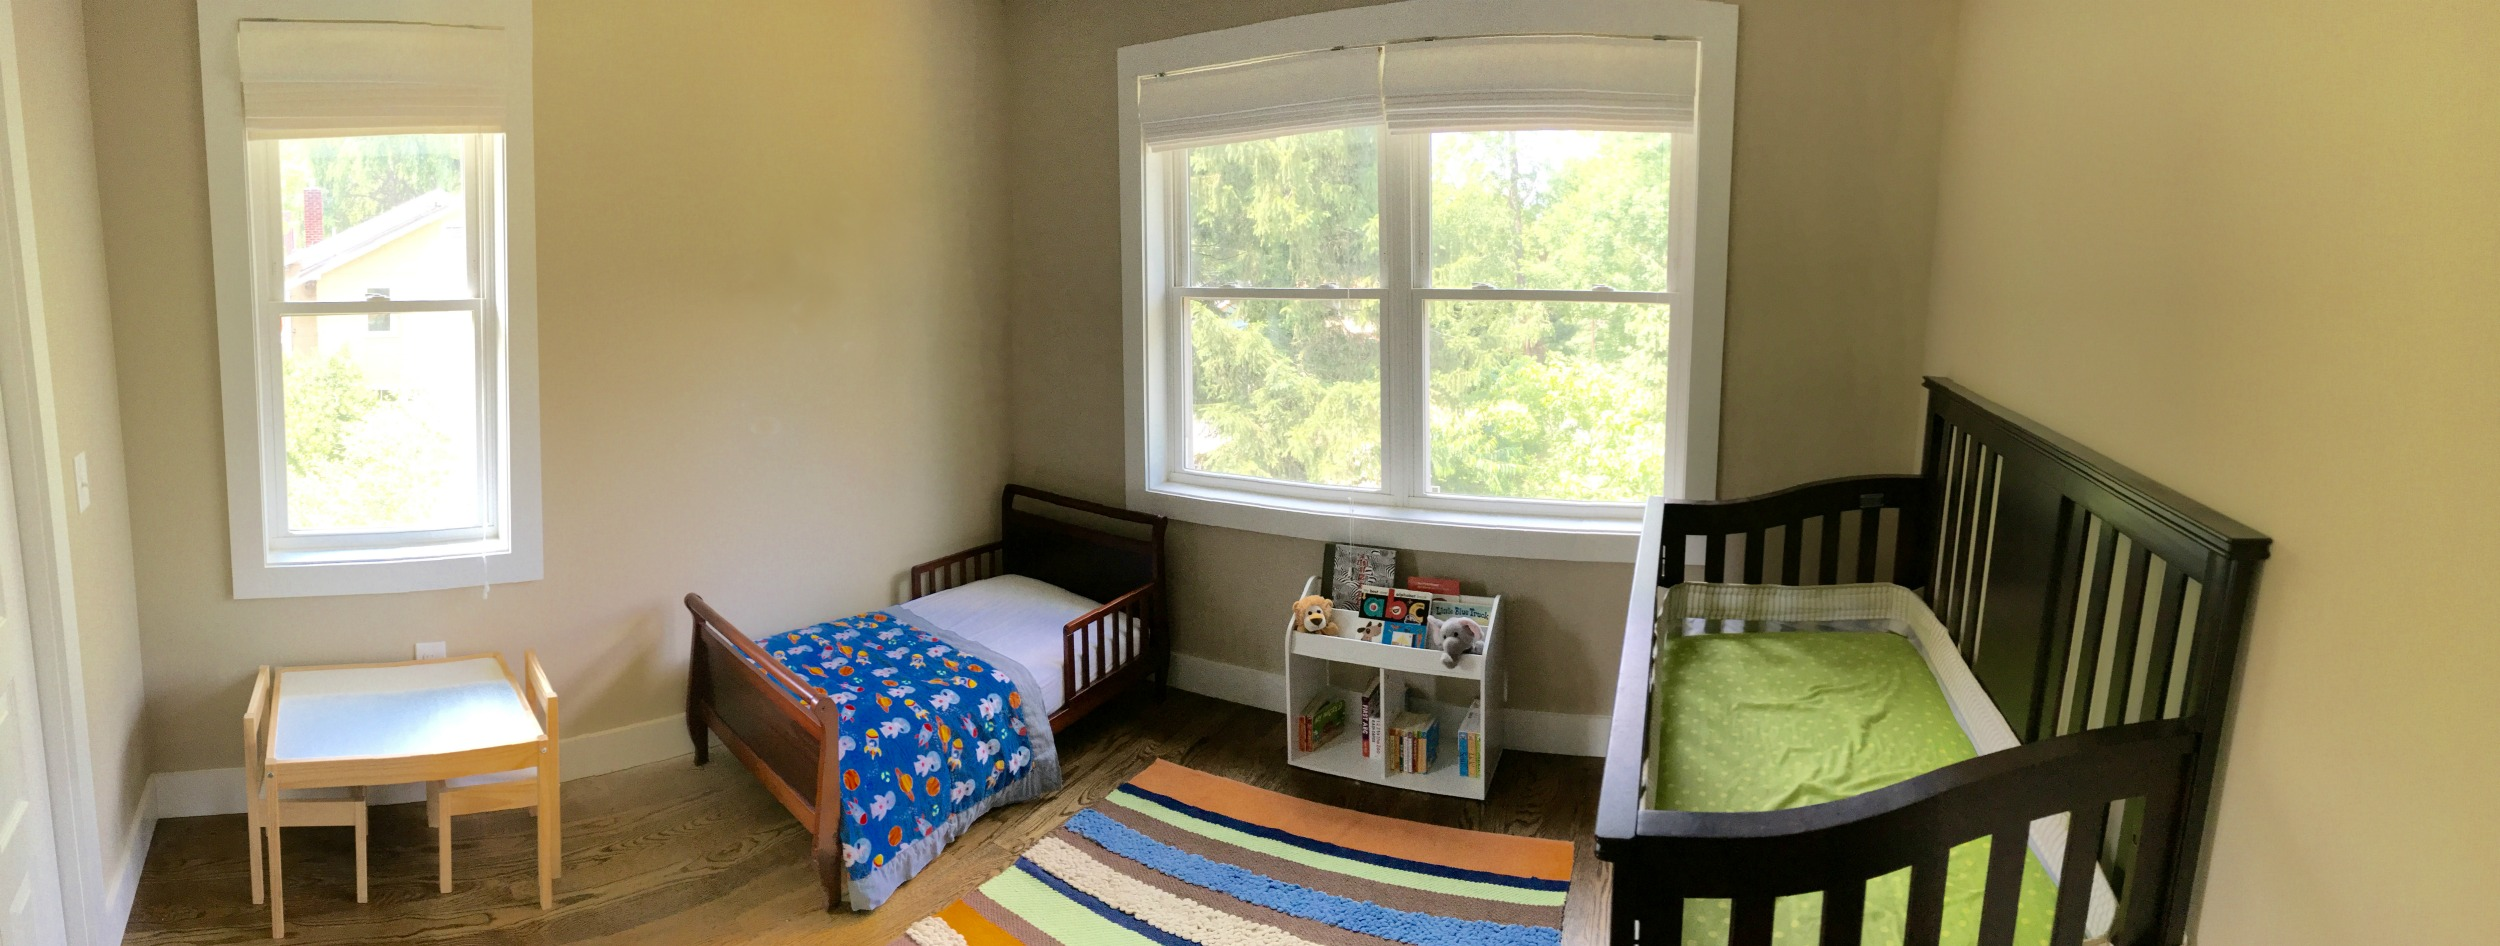 shared-kids-bedroom